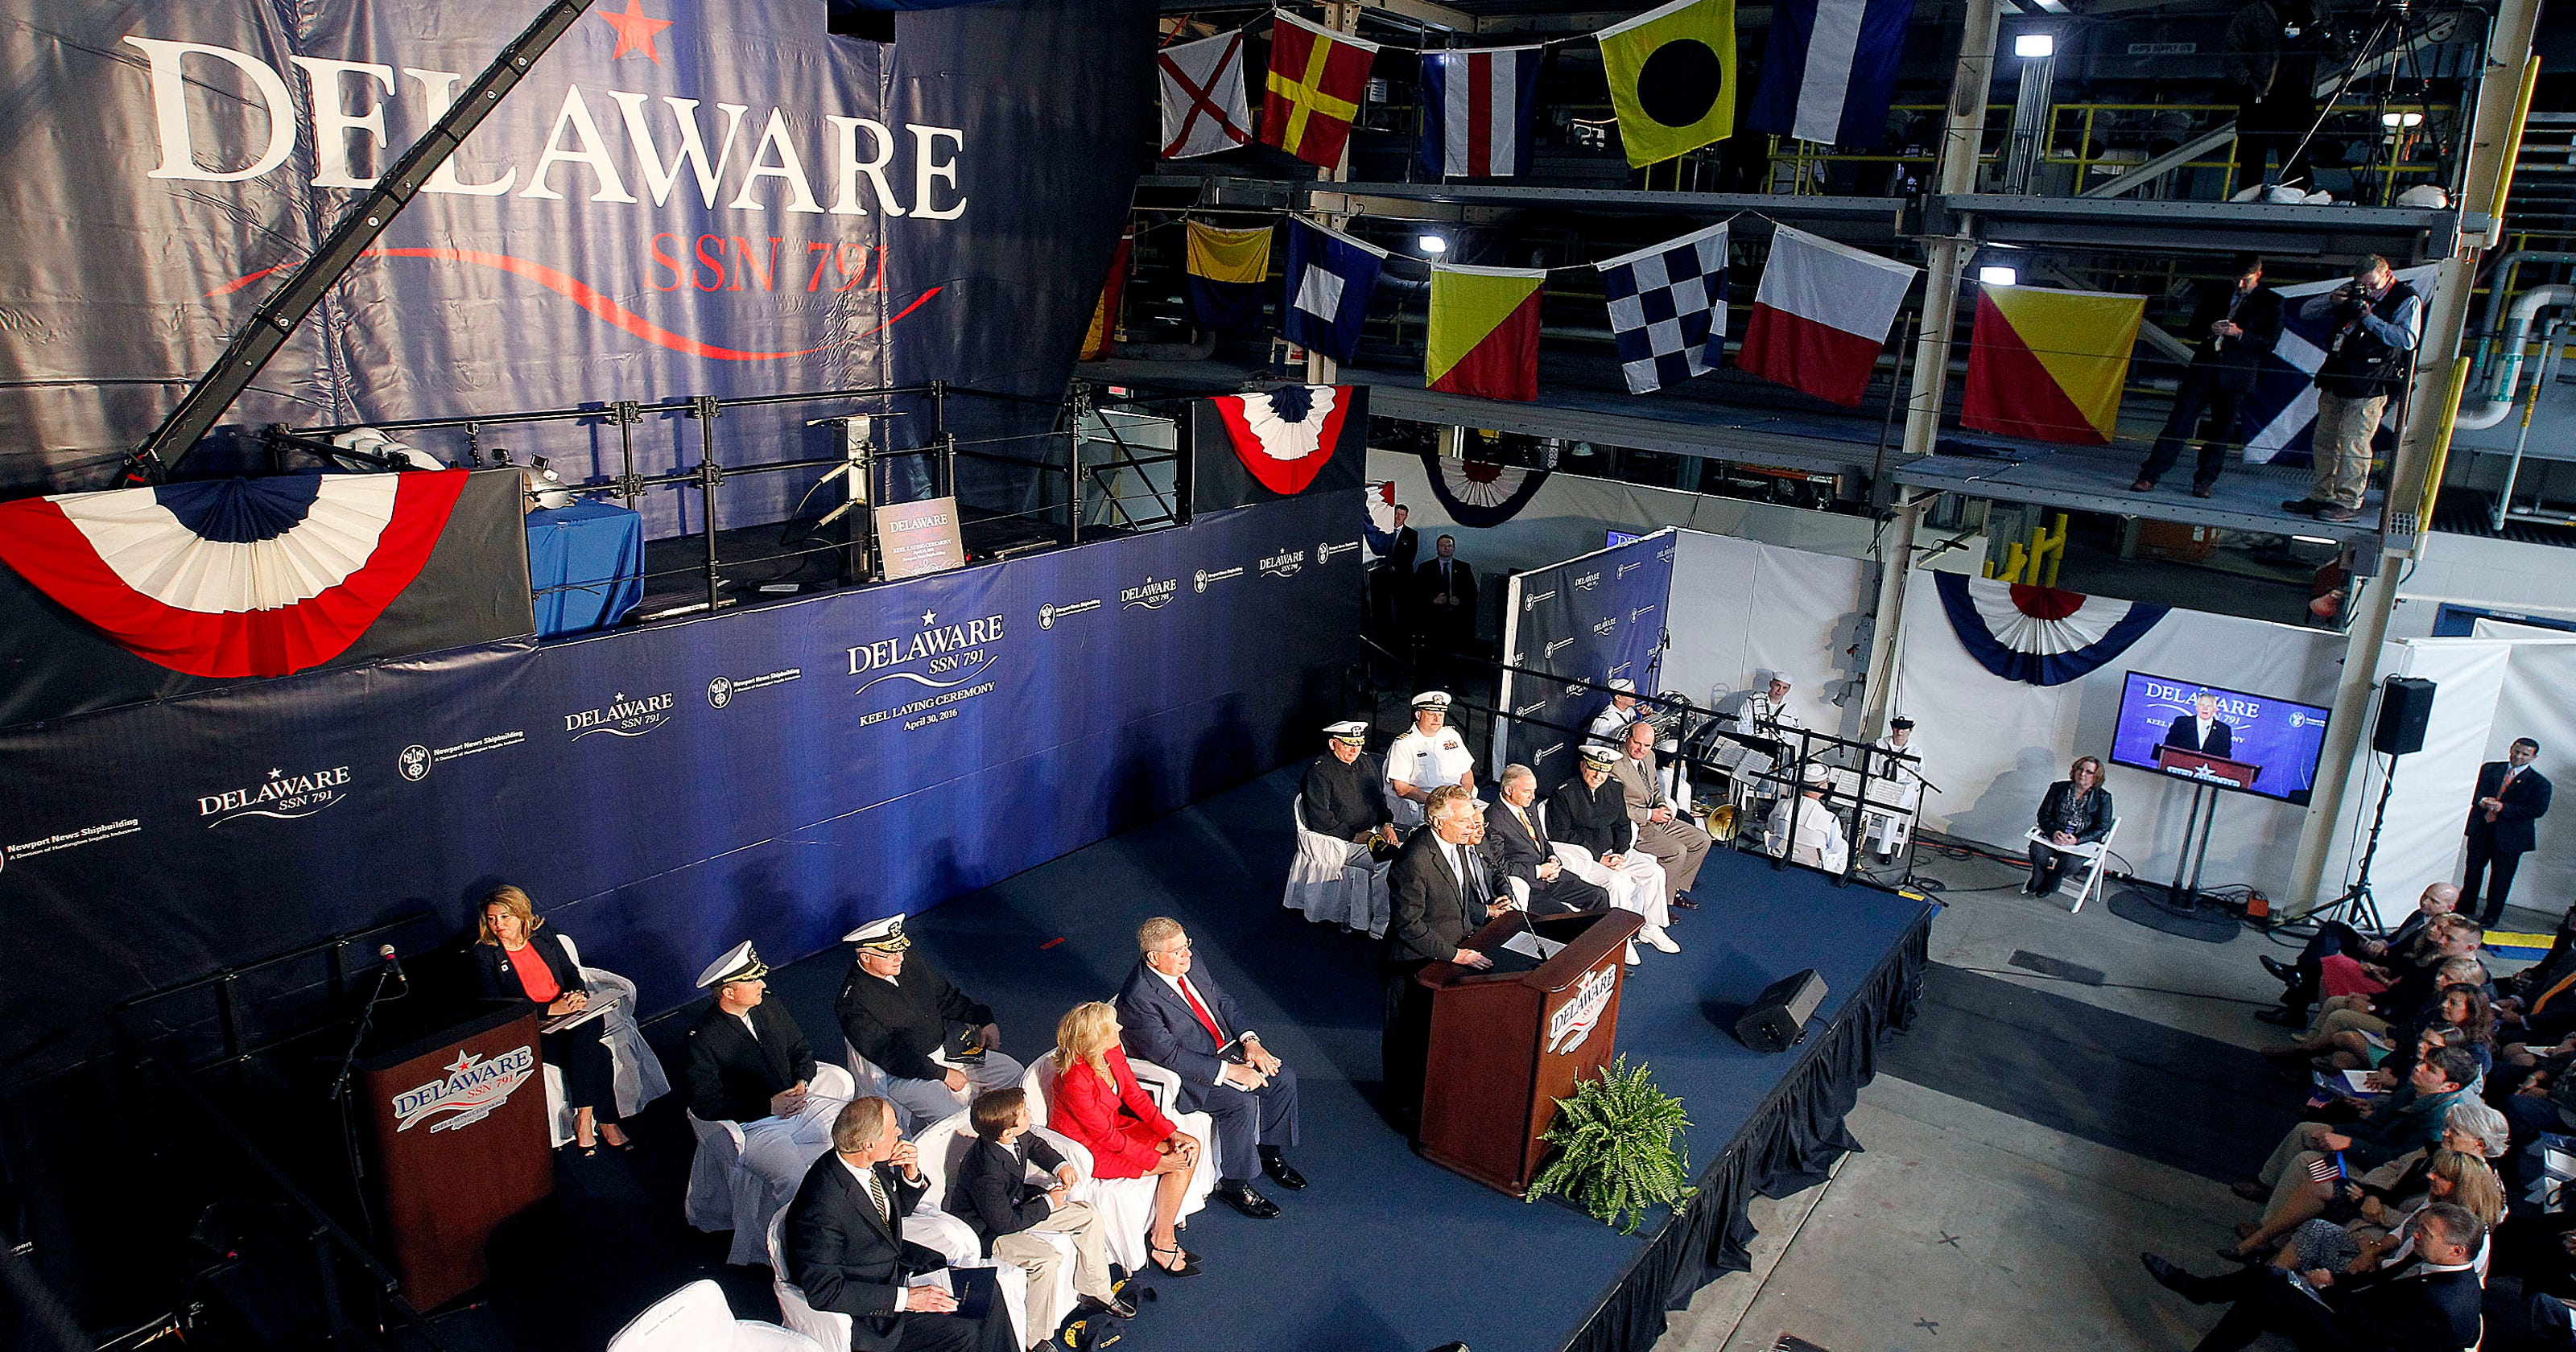 Watch out for the Delaware, 'the most advanced submarine in